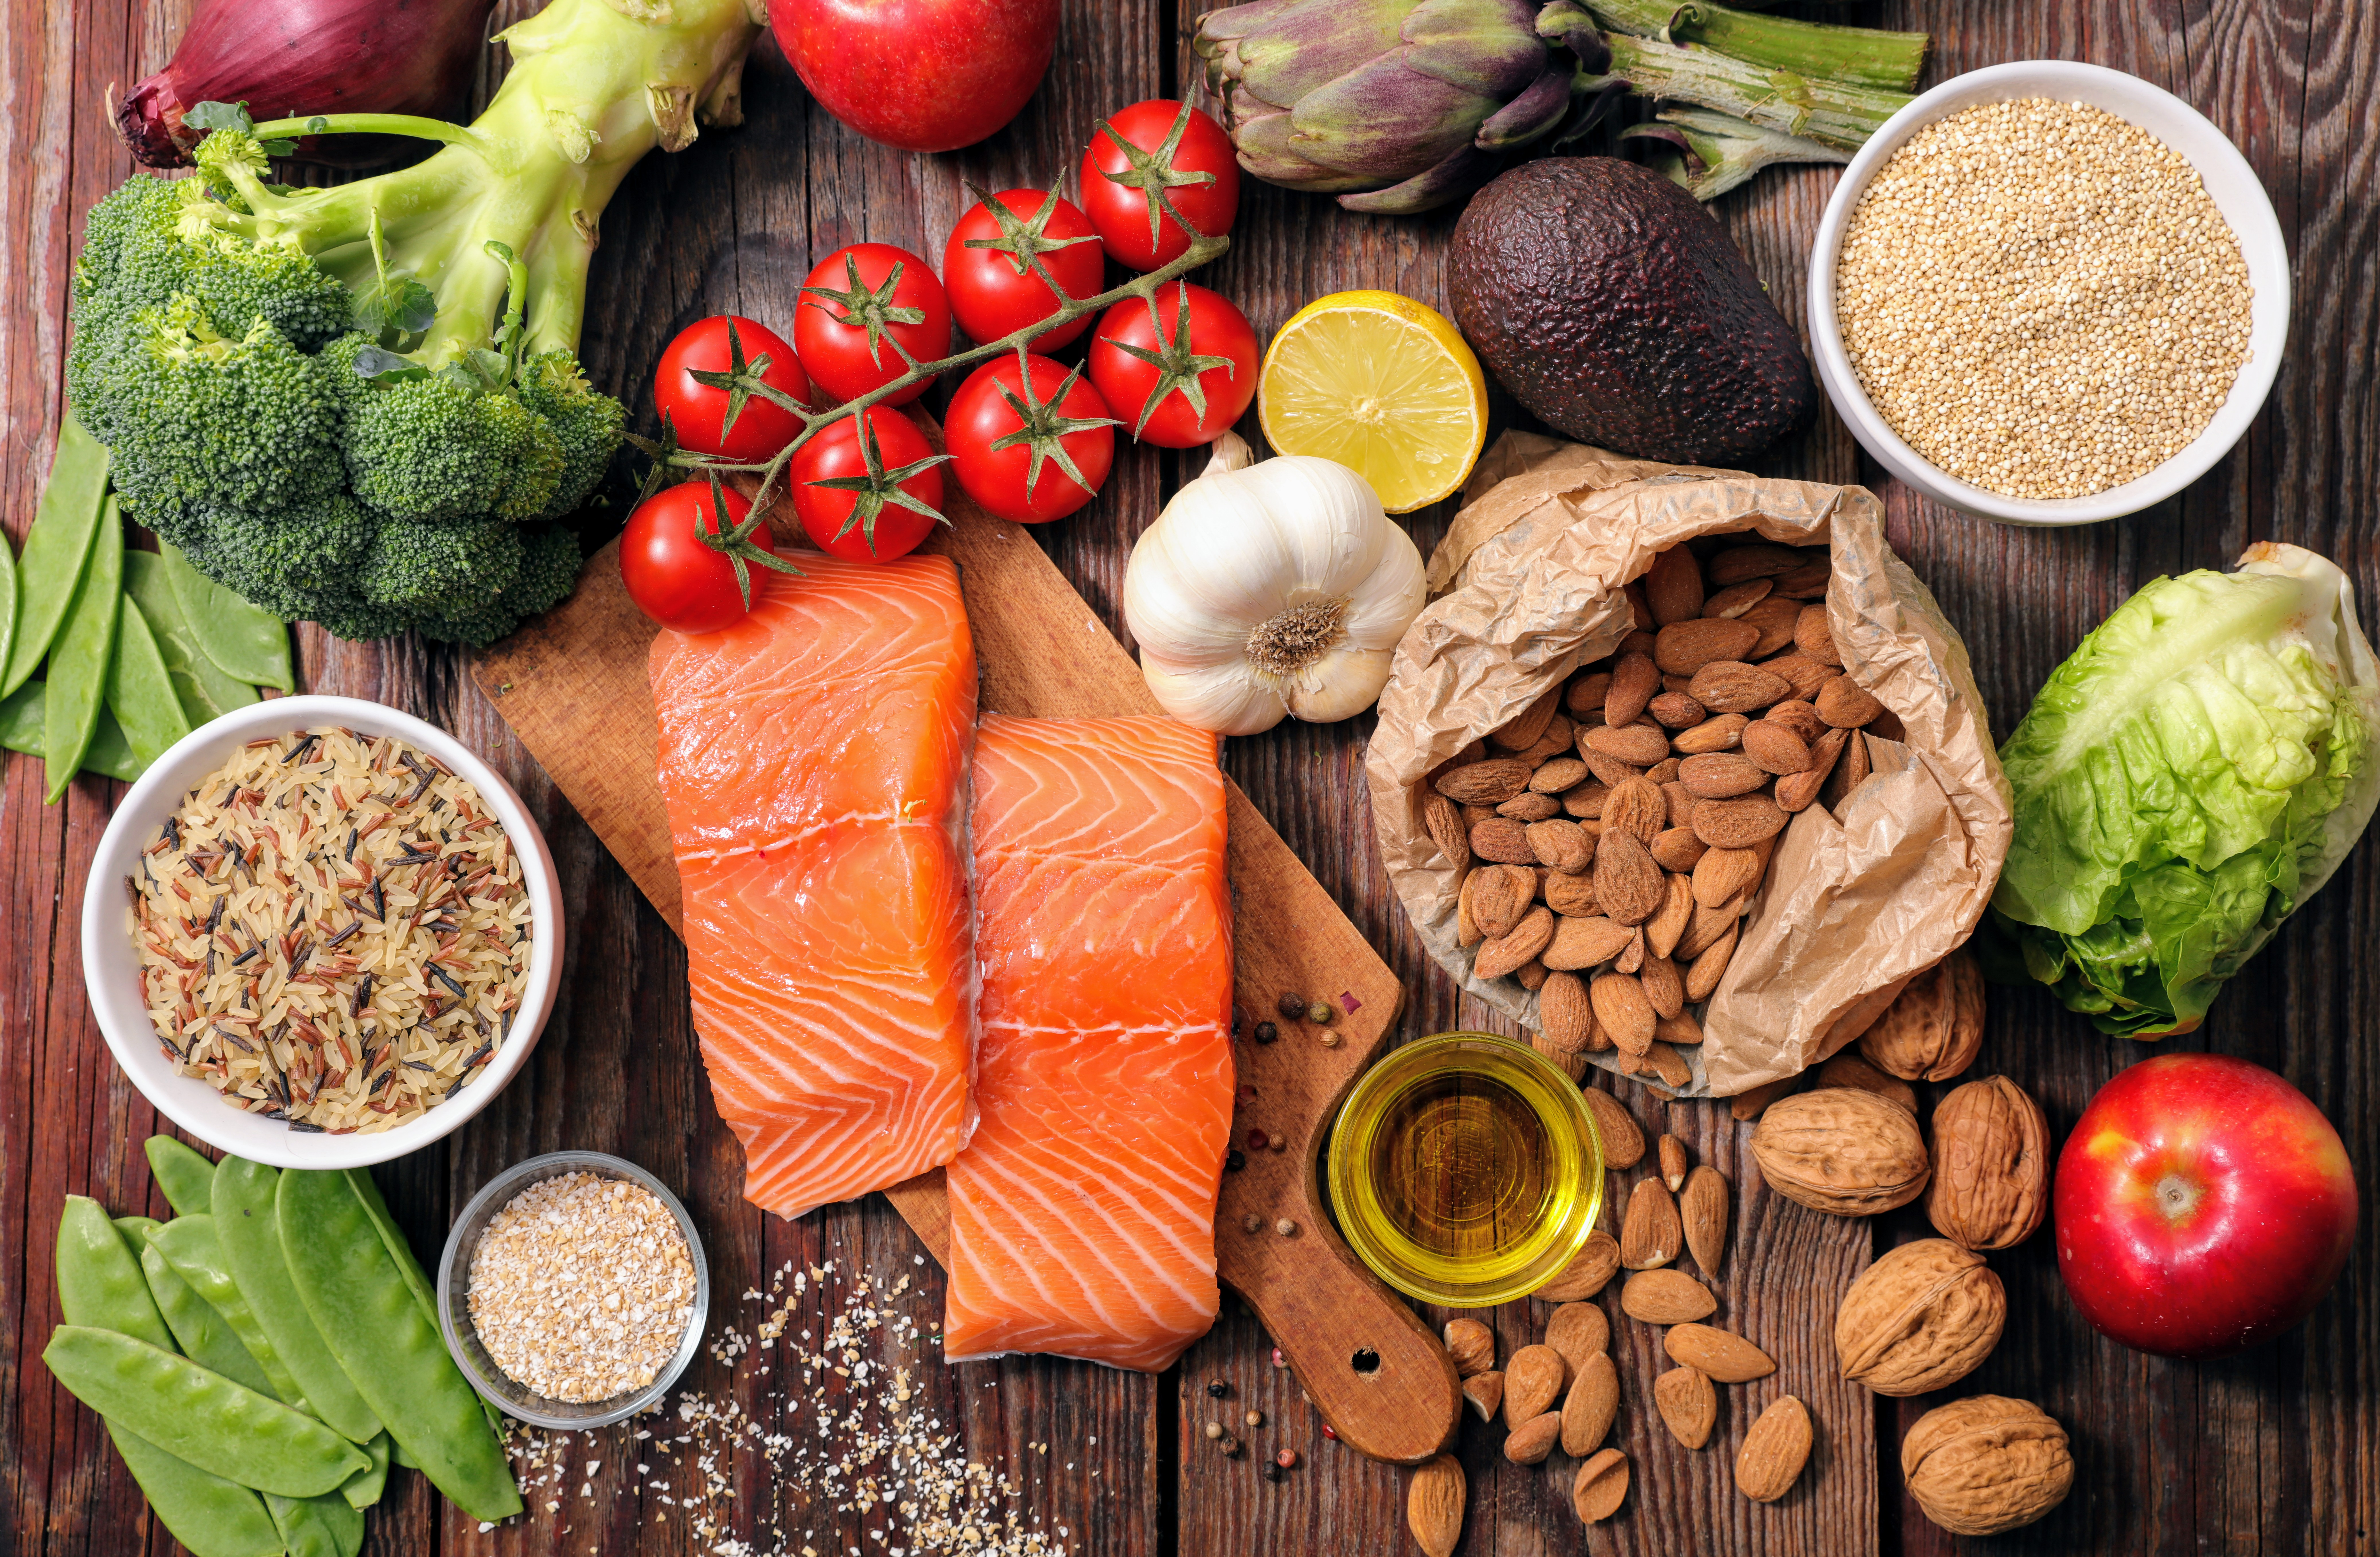 The researchers found that a significant number of individuals in the lowest income and education groups cannot afford a healthier diet